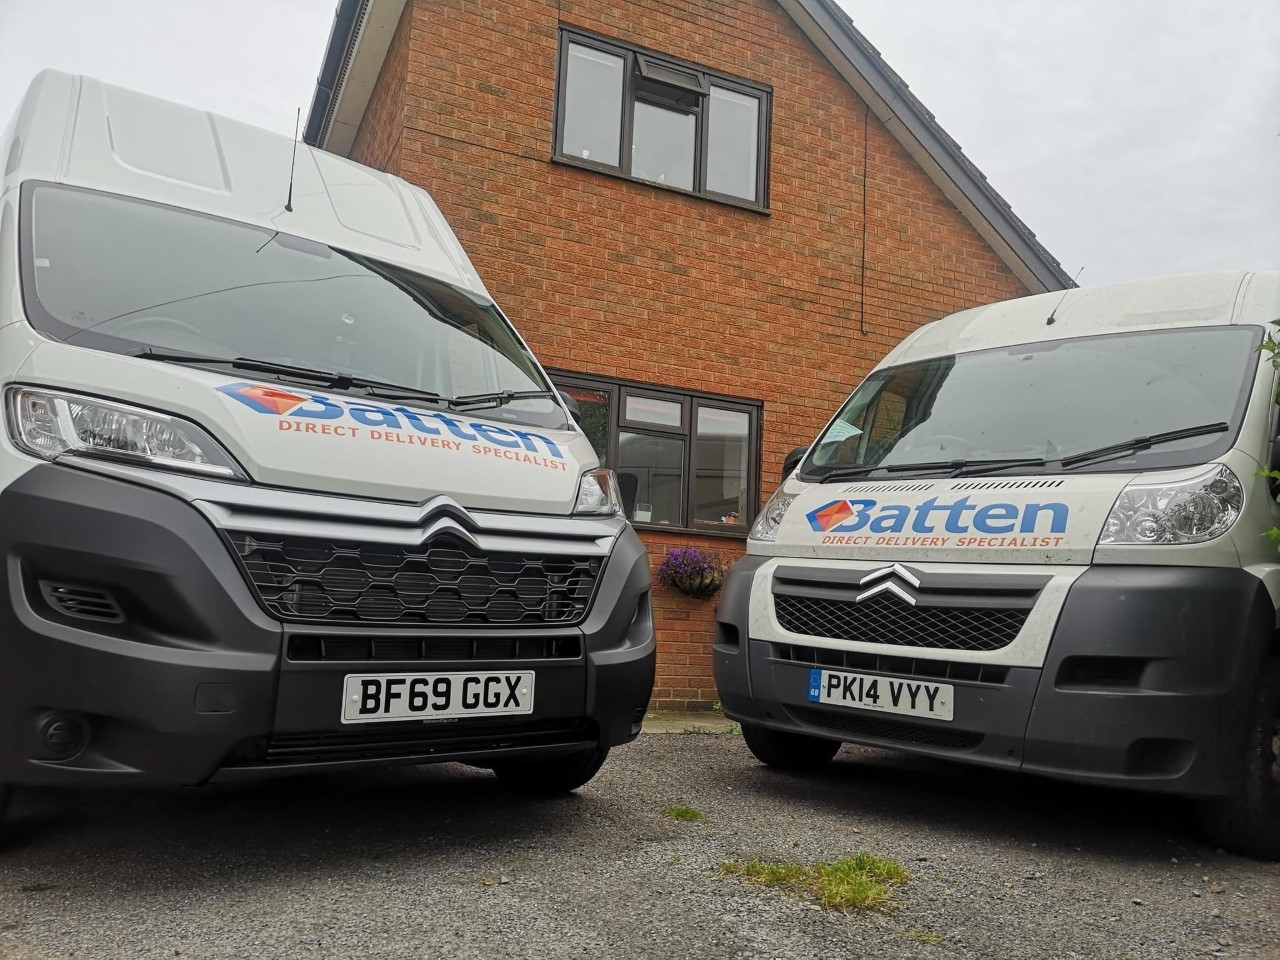 Batten Direct Delivery Specialist